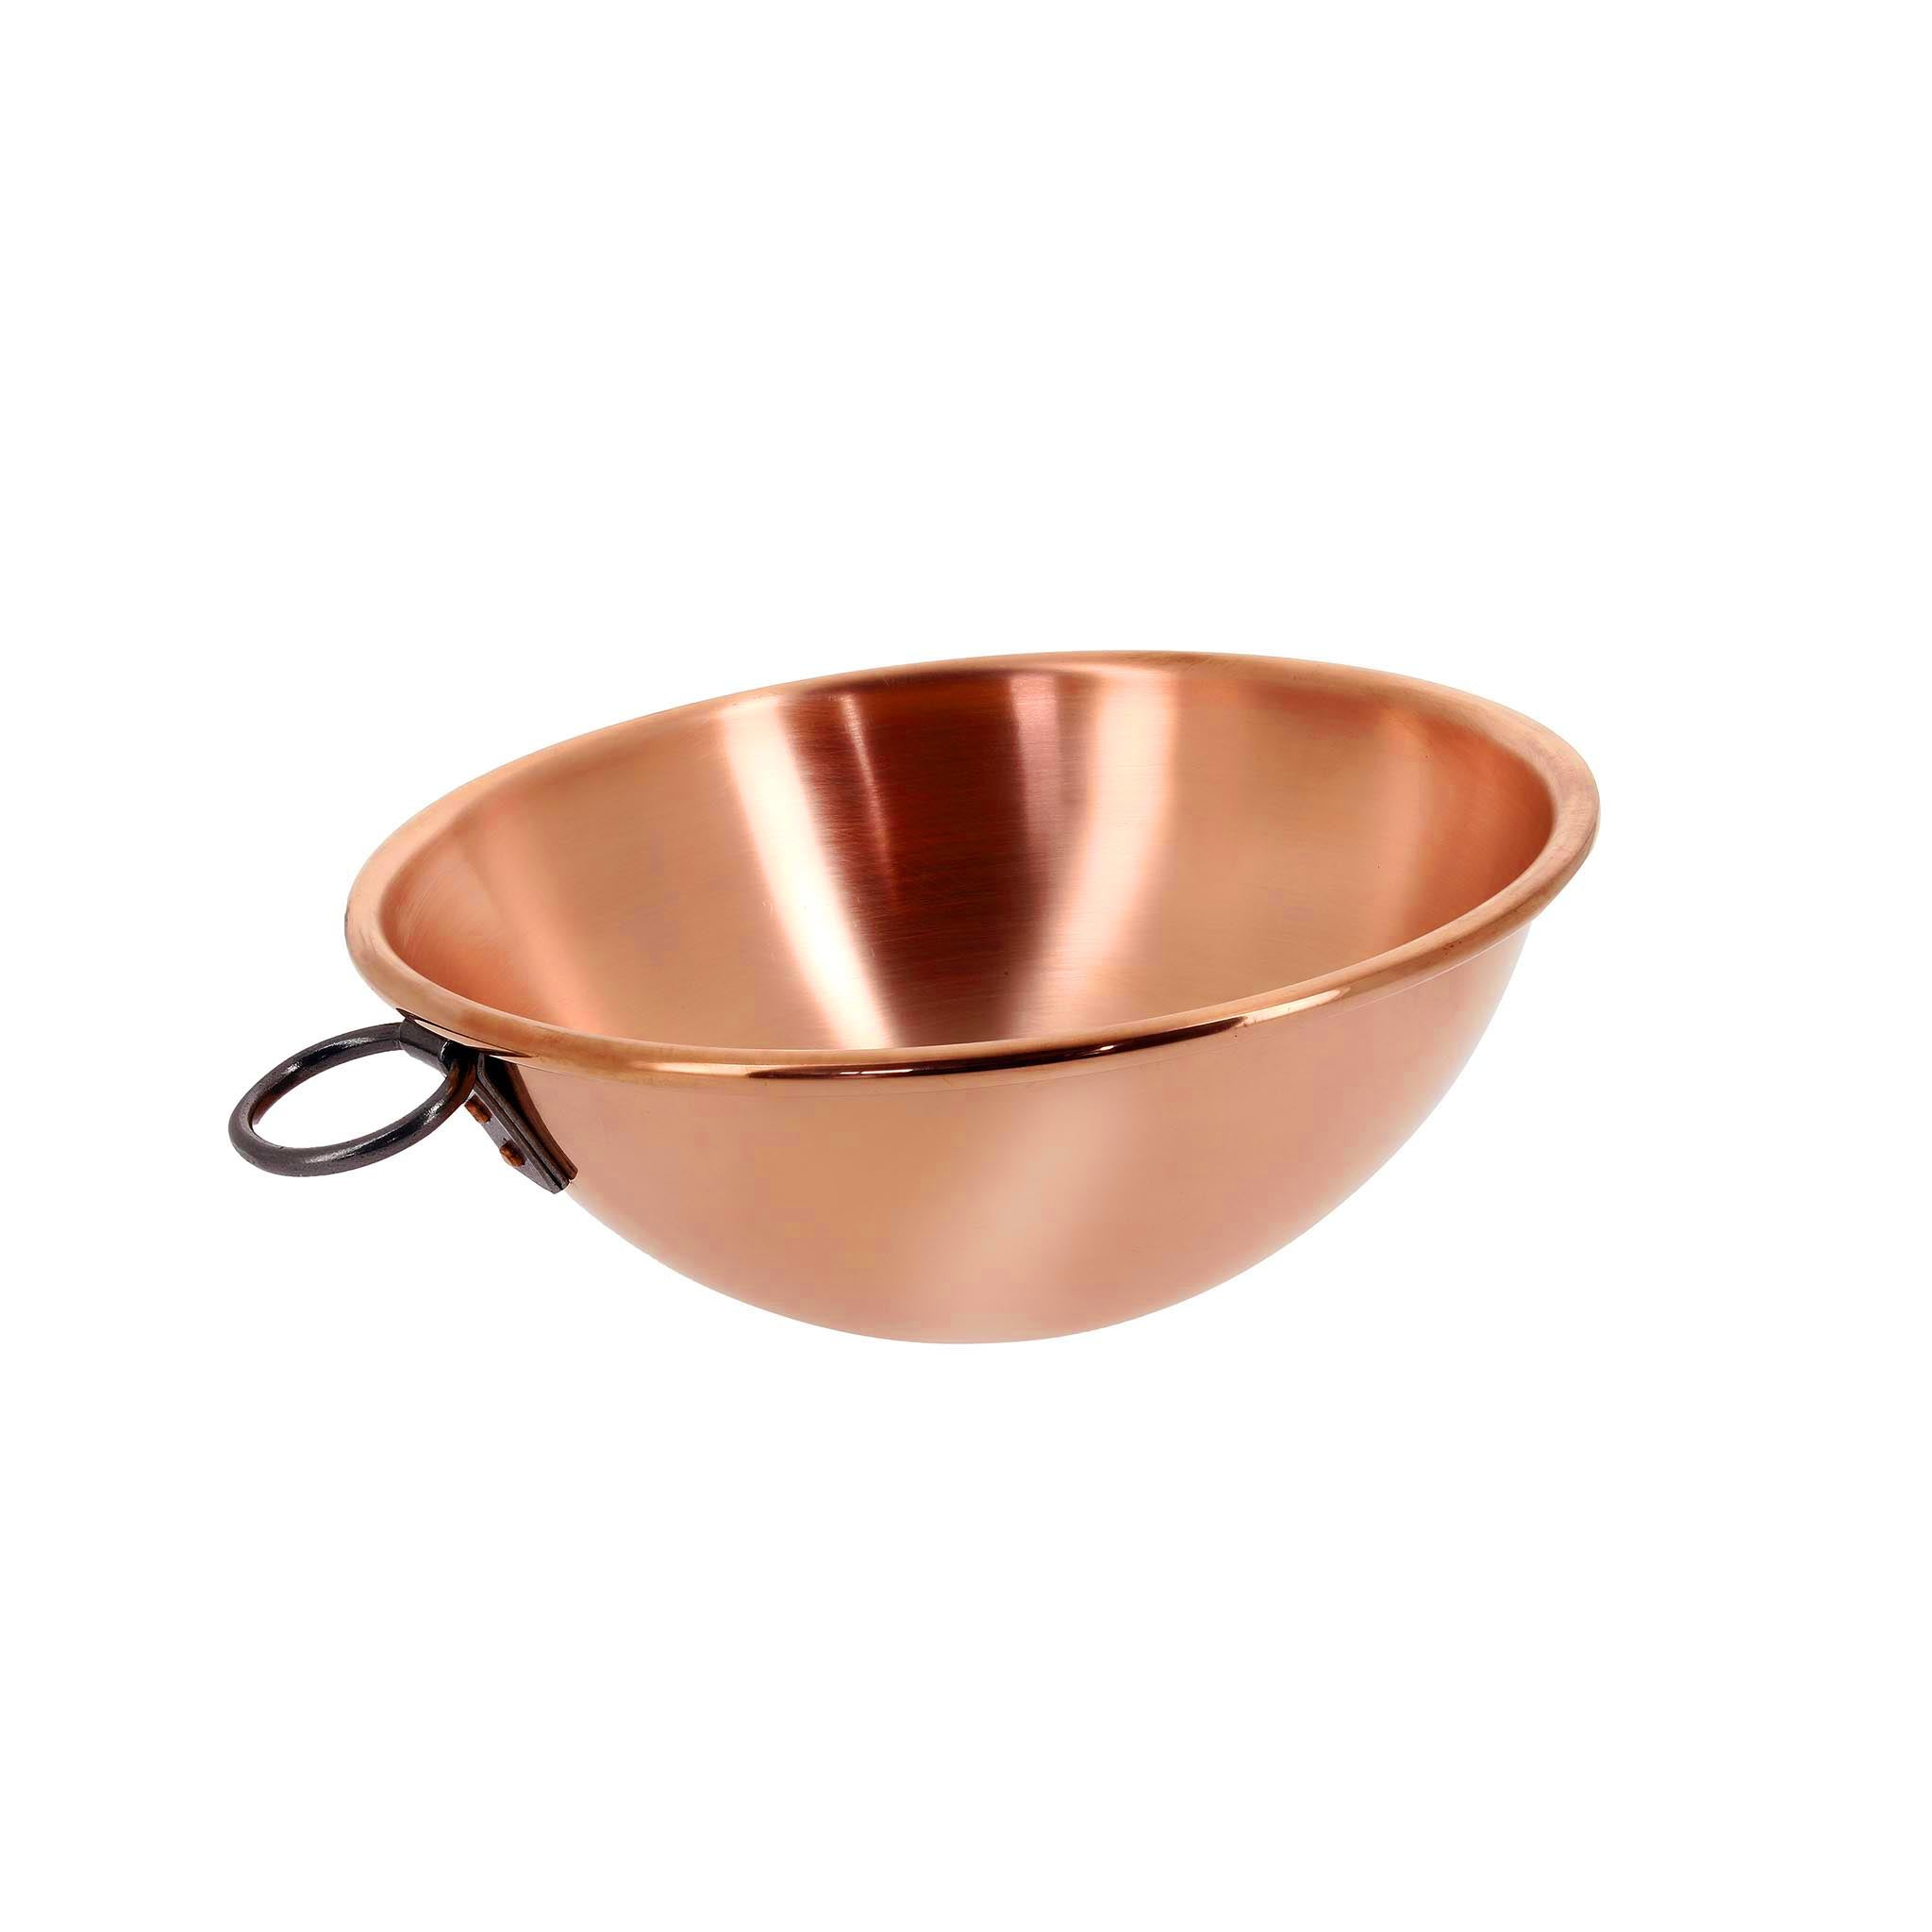 De Buyer Copper Beating Bowl